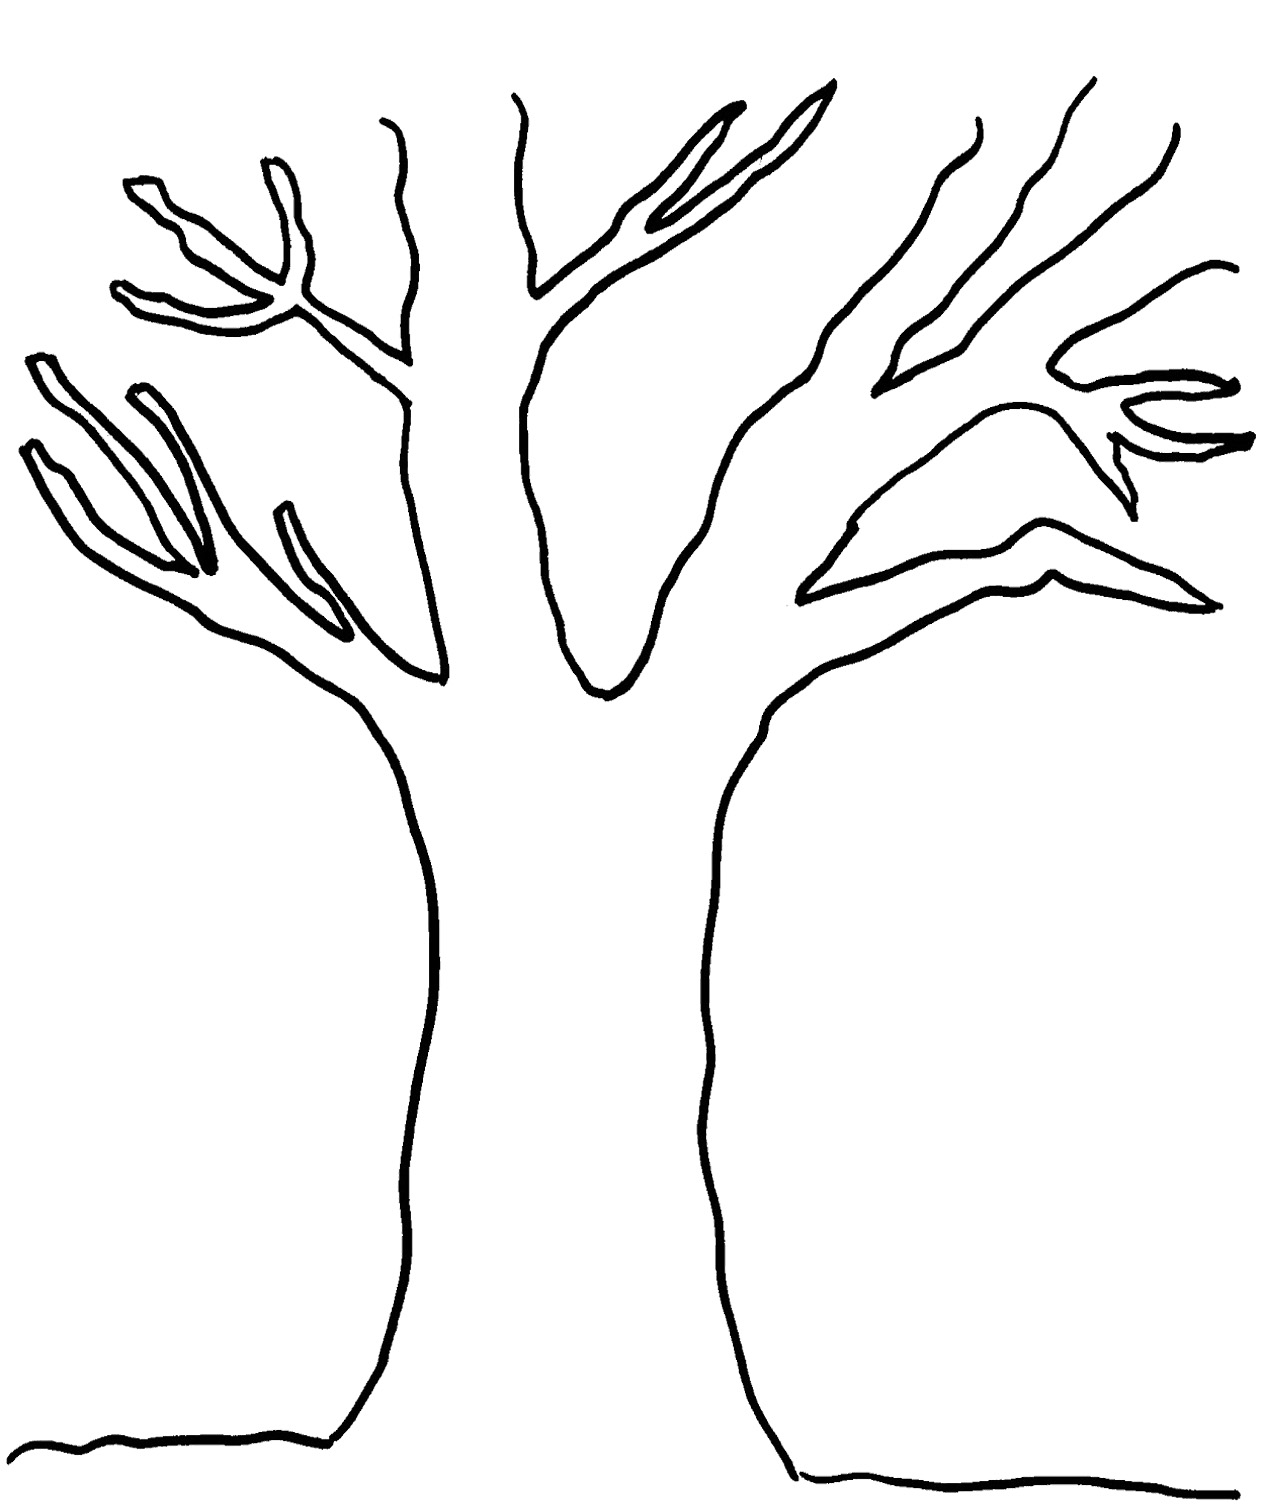 Free Printable Pictures Of Trees Download Free Clip Art Free Clip Art On Clipart Library